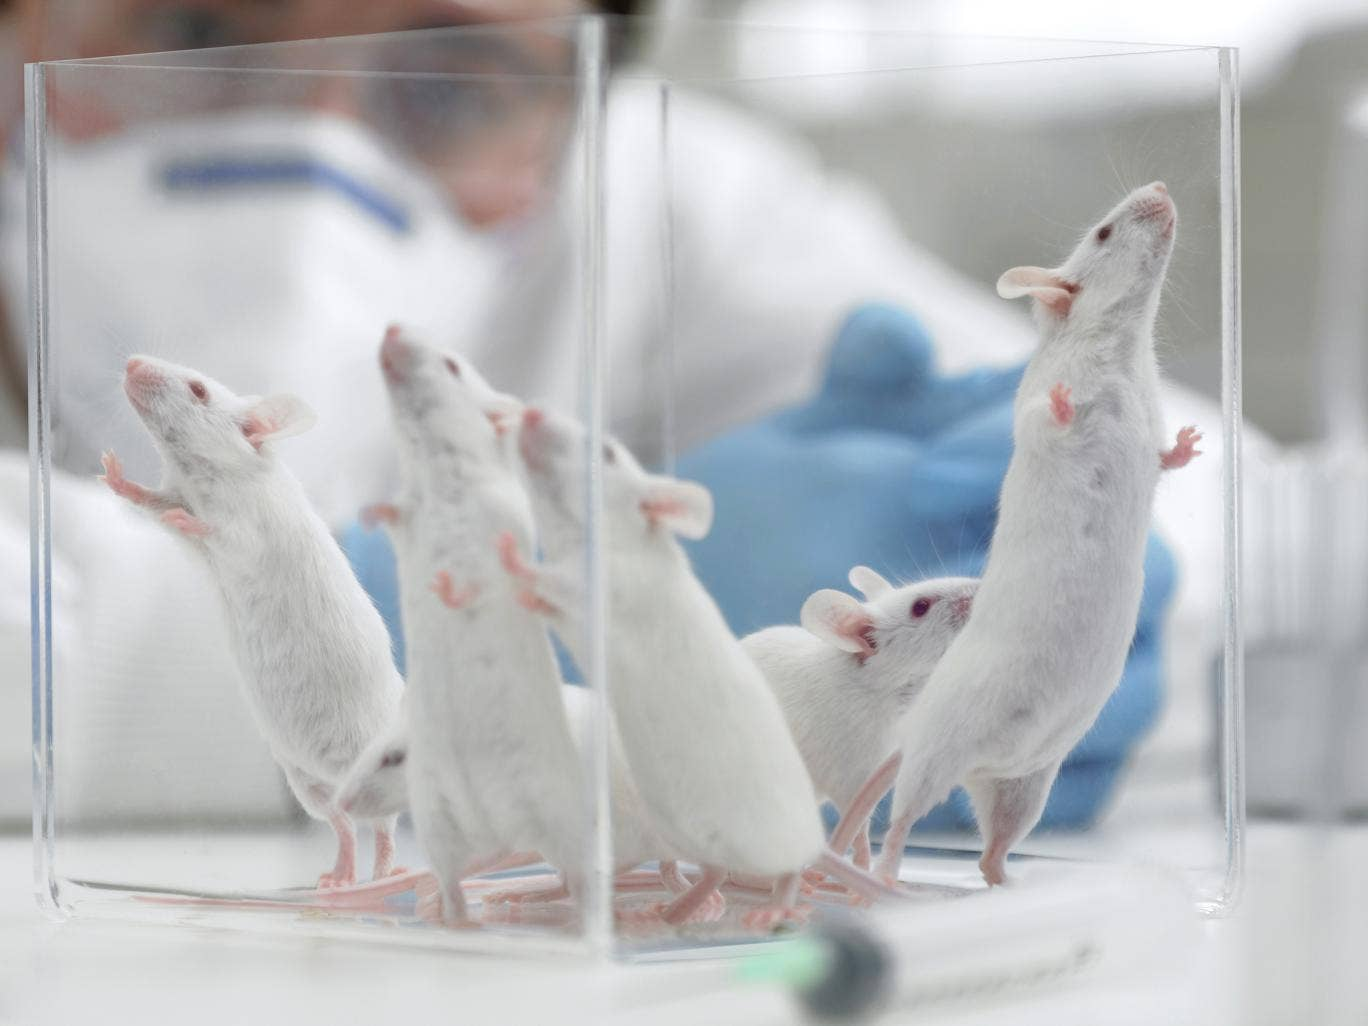 Researchers were able to perform gene therapy on living mice